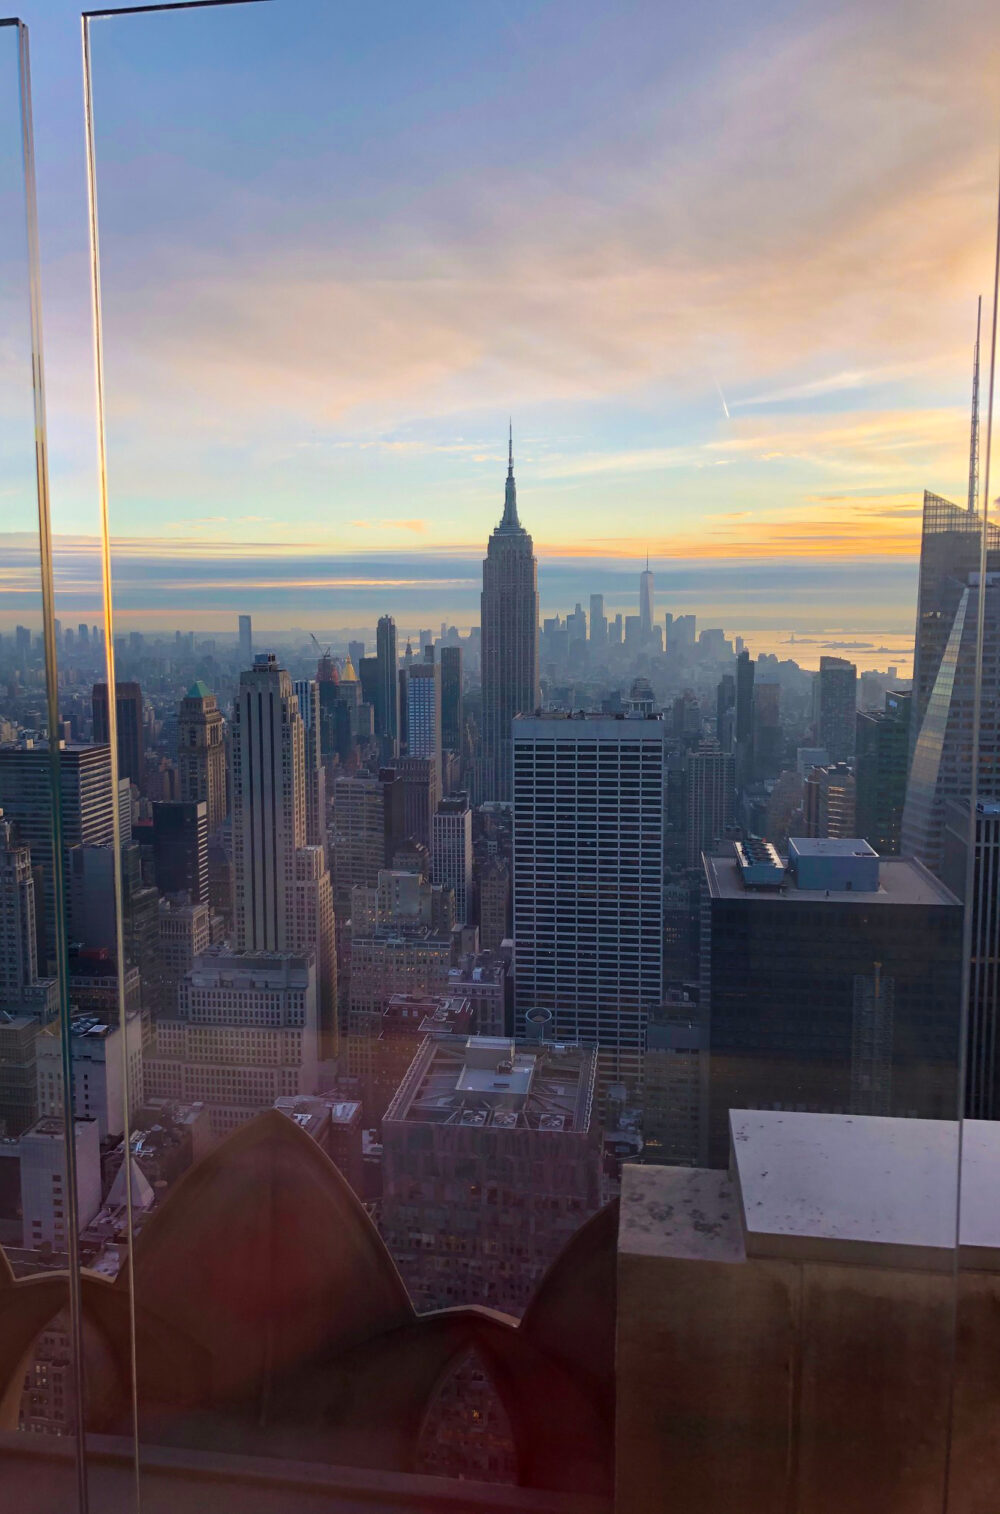 2020 Life Lessons - Sunset Over Manhattan from the Rainbow Room